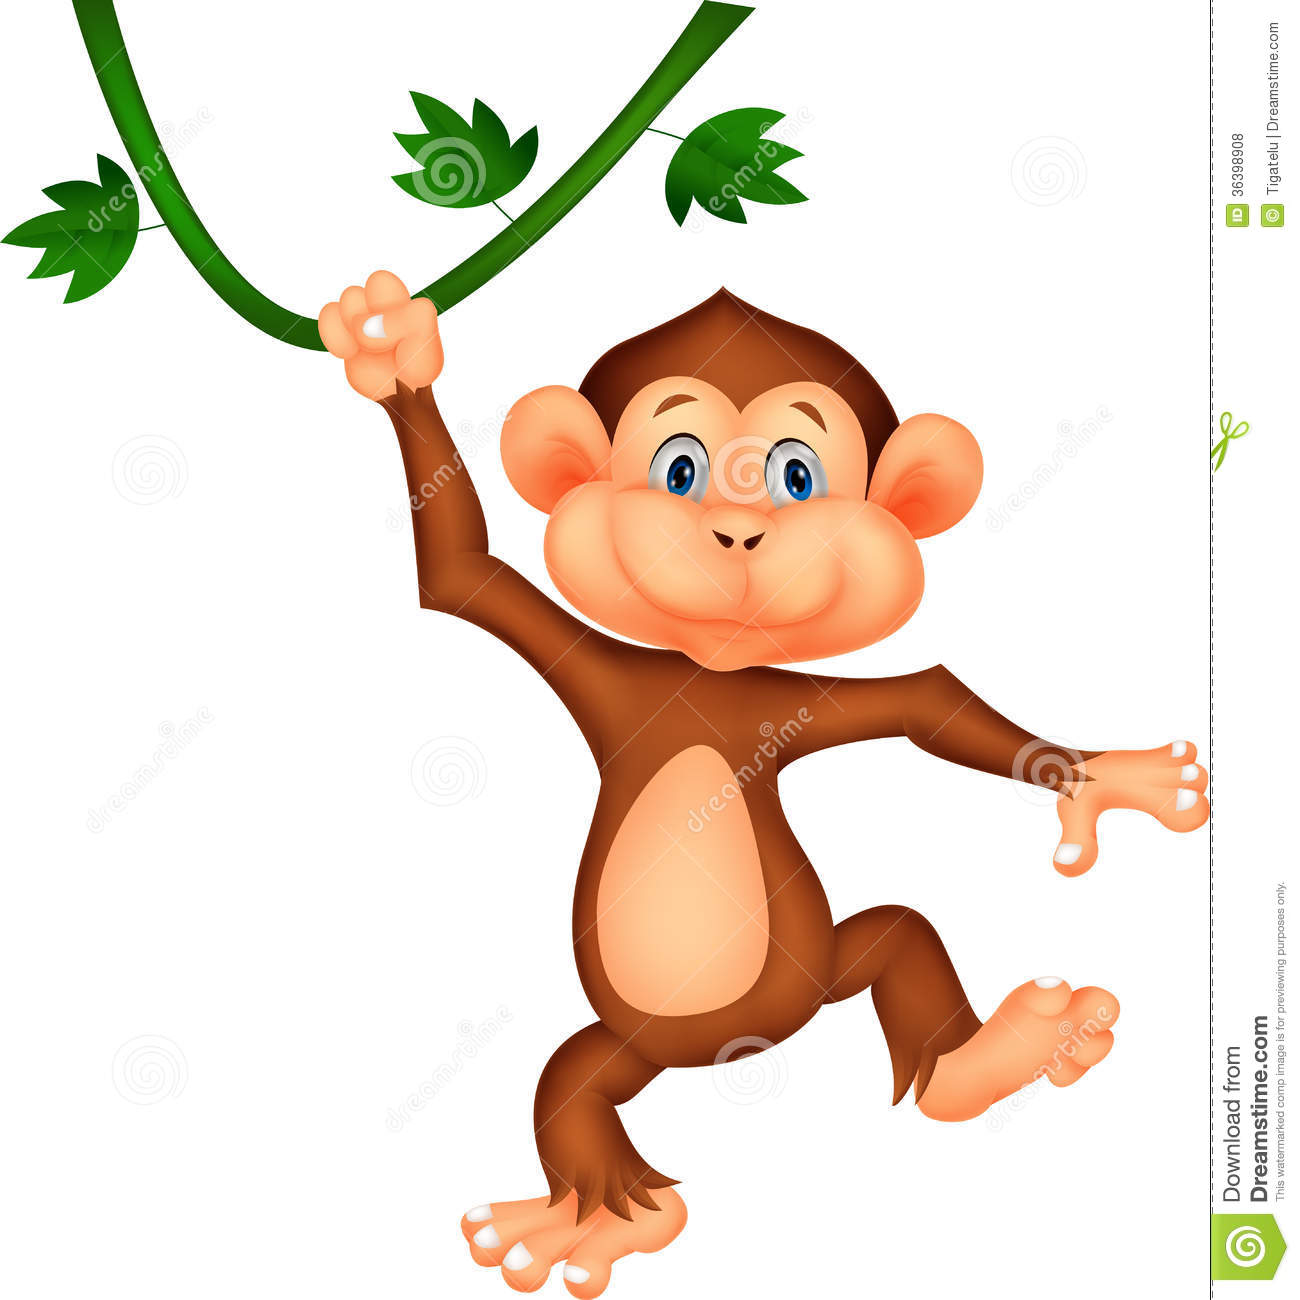 hanging monkeys tulum smsender co rh tulum smsender co cute hanging monkey clipart monkey hanging from tree clipart